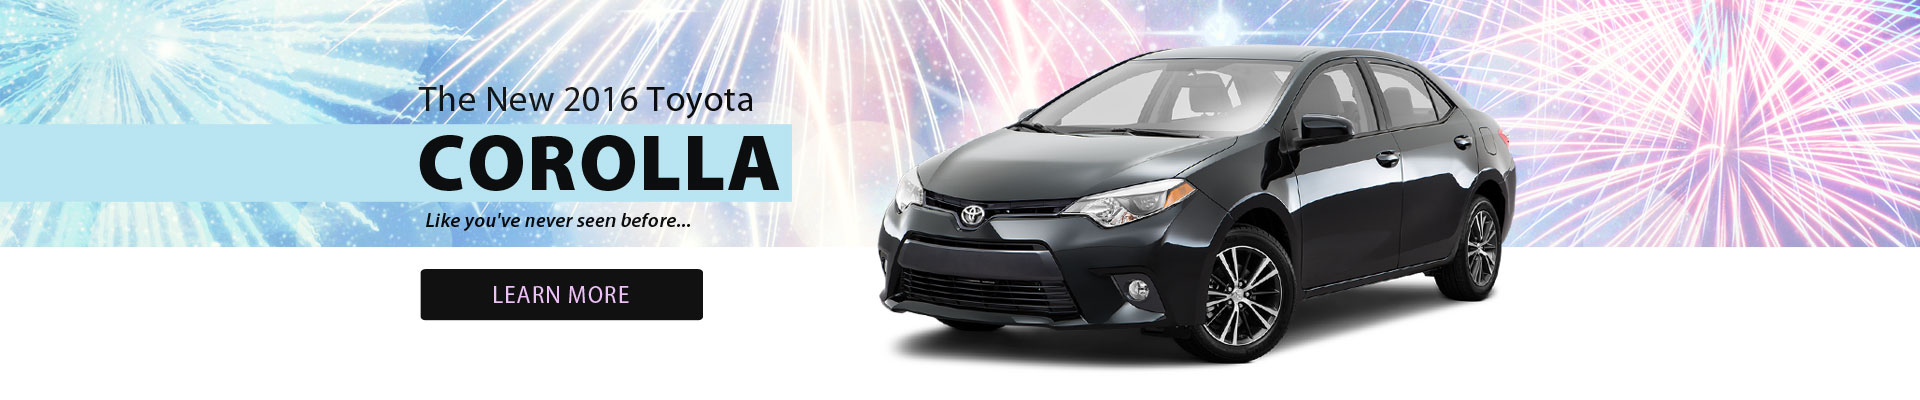 The new 2016 Corolla like you've never seen before